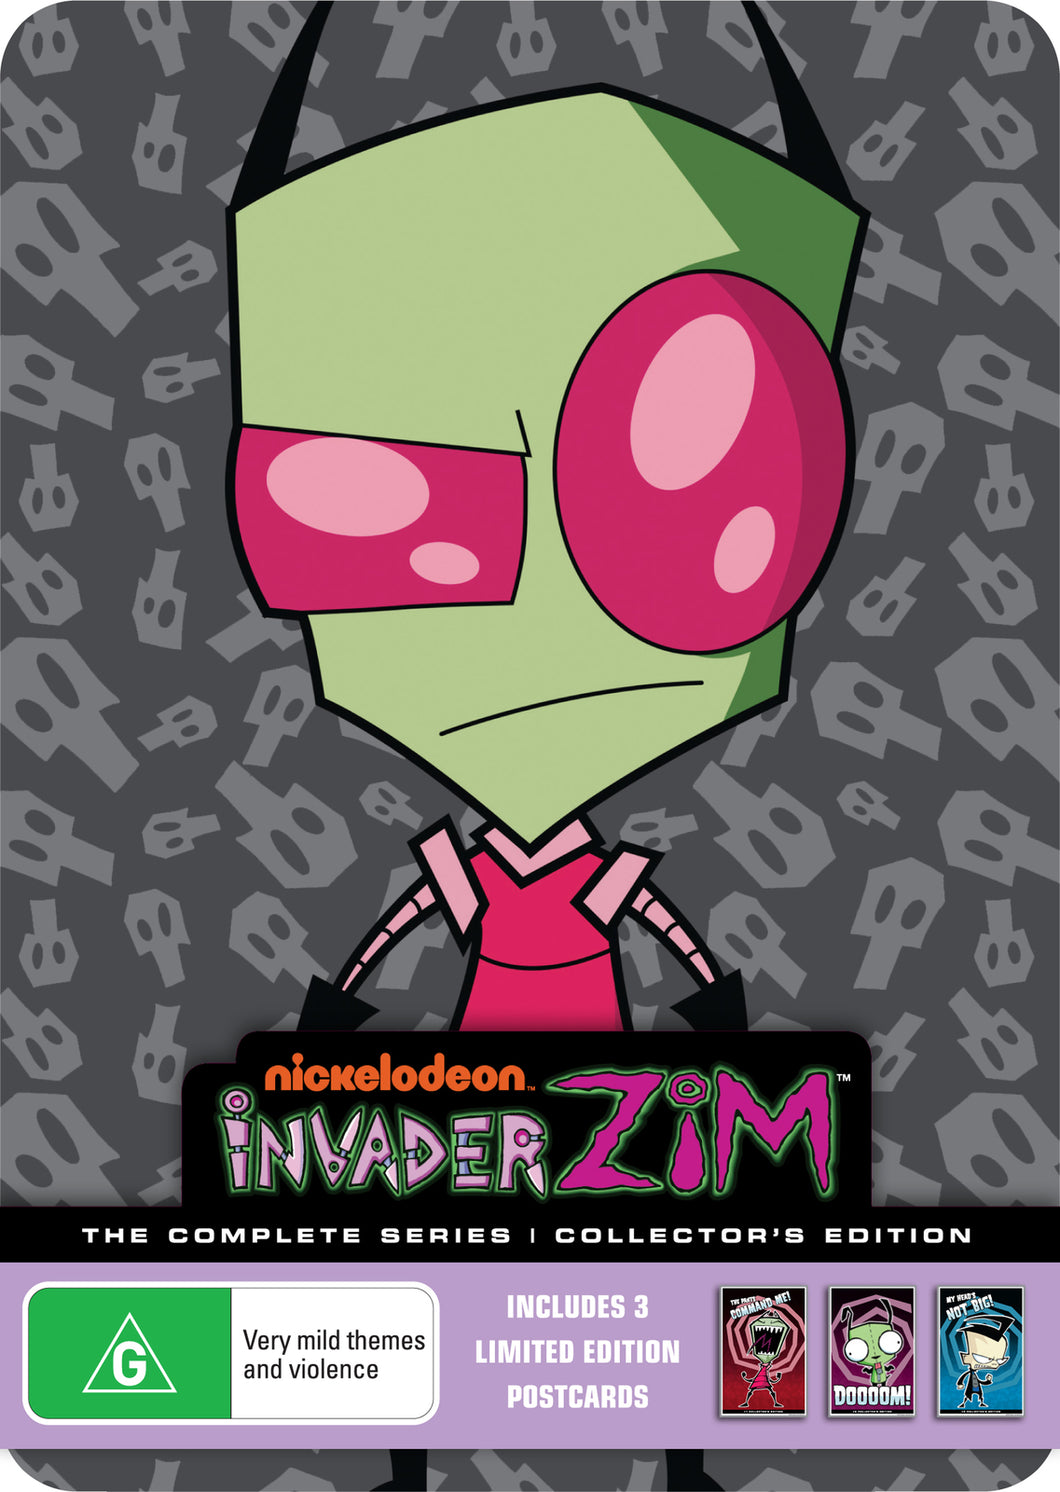 Invader Zim - Complete Series Collectors Tin (Inc 3 Postcards)